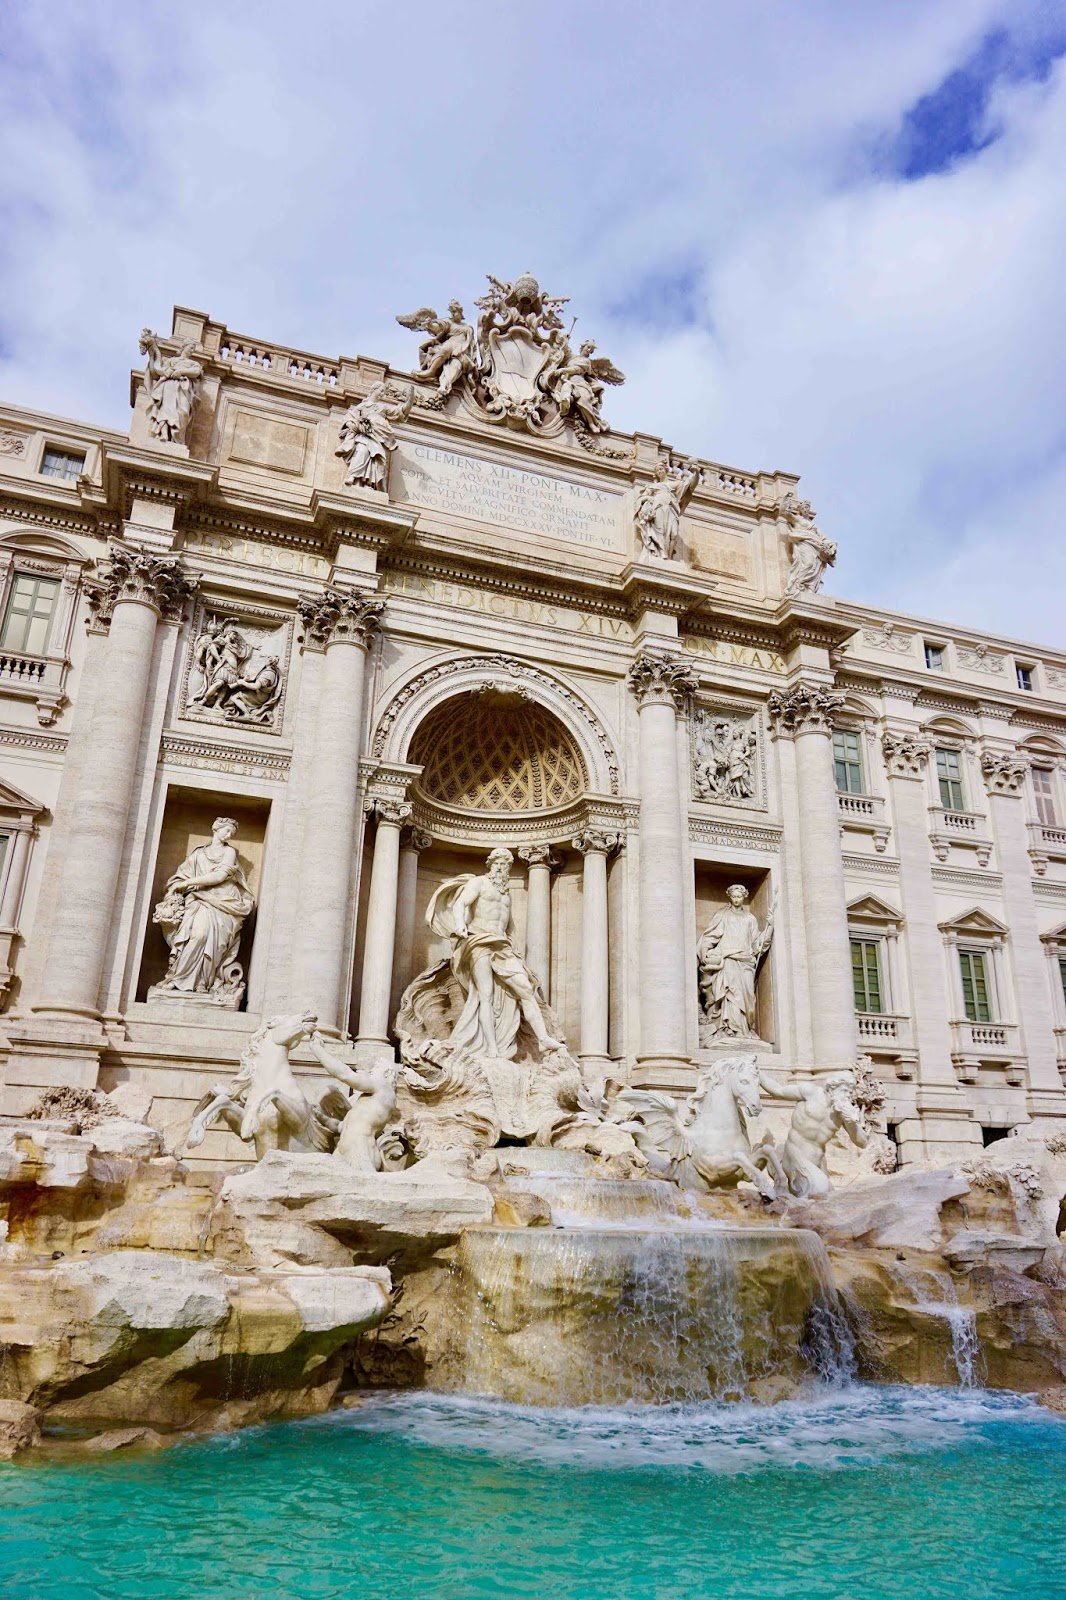 Trevi Fountain January 2019